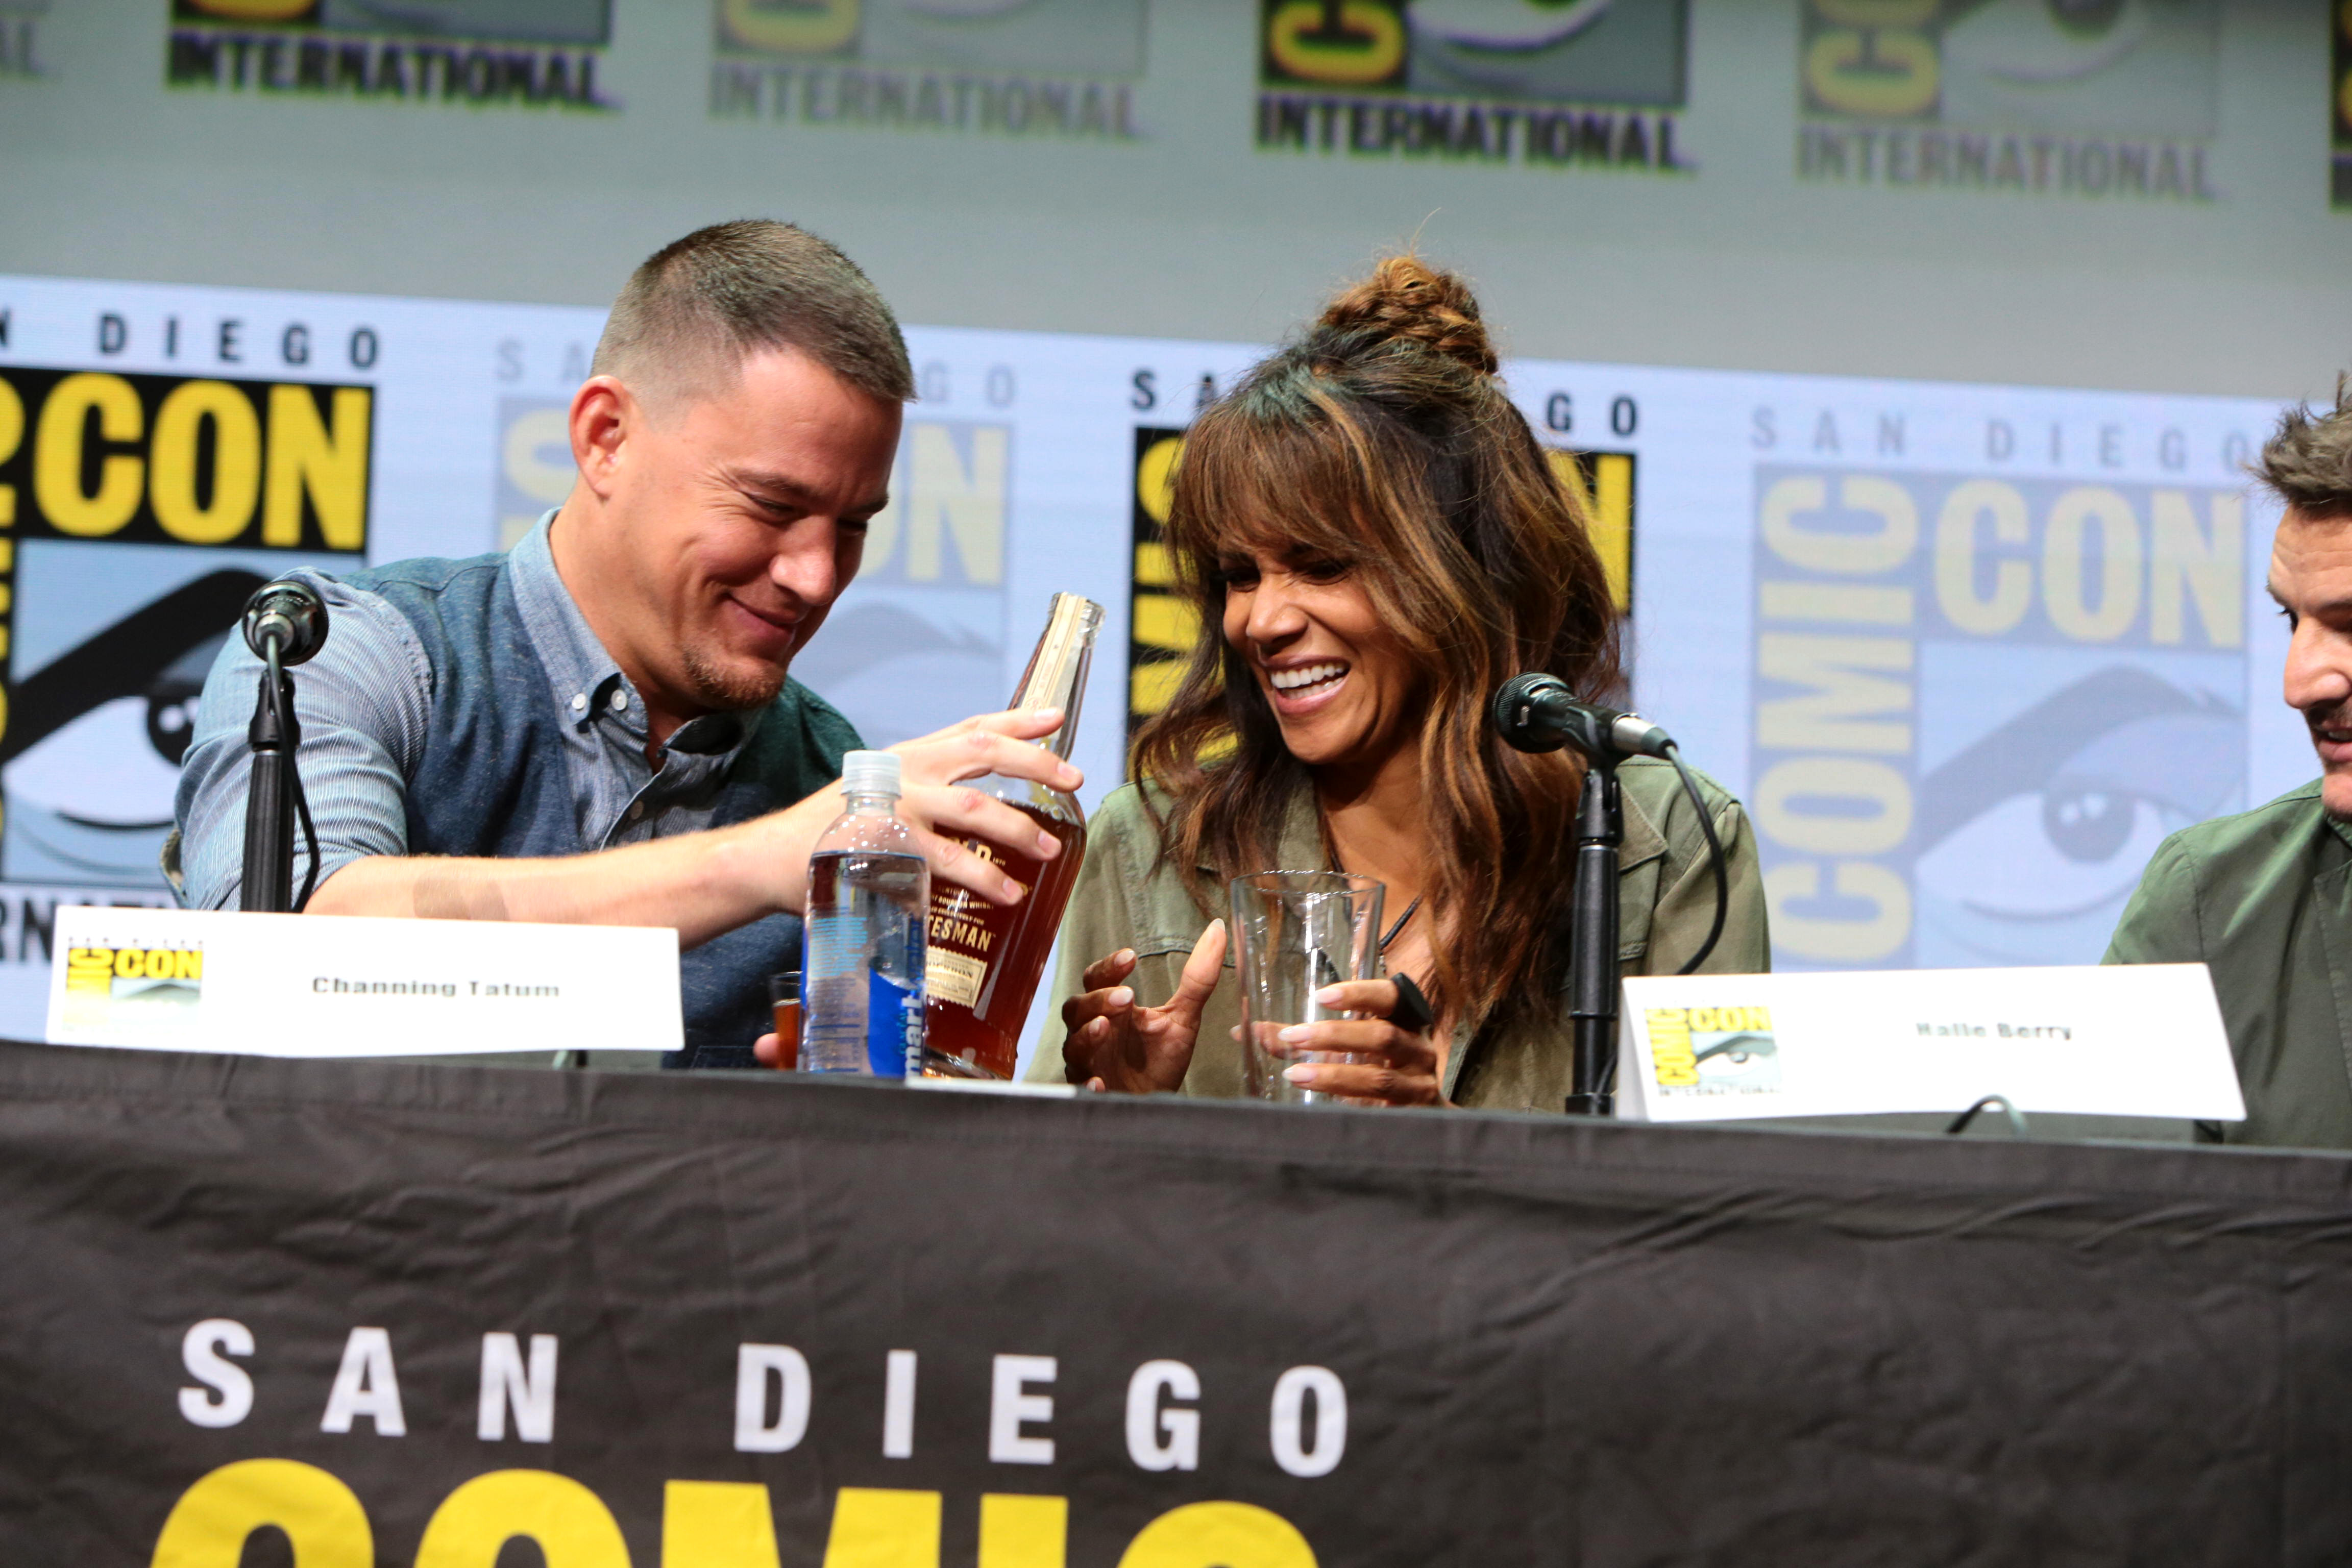 Channing Tatum apologizes to Halle Berry for whiskey stunt with male dancers